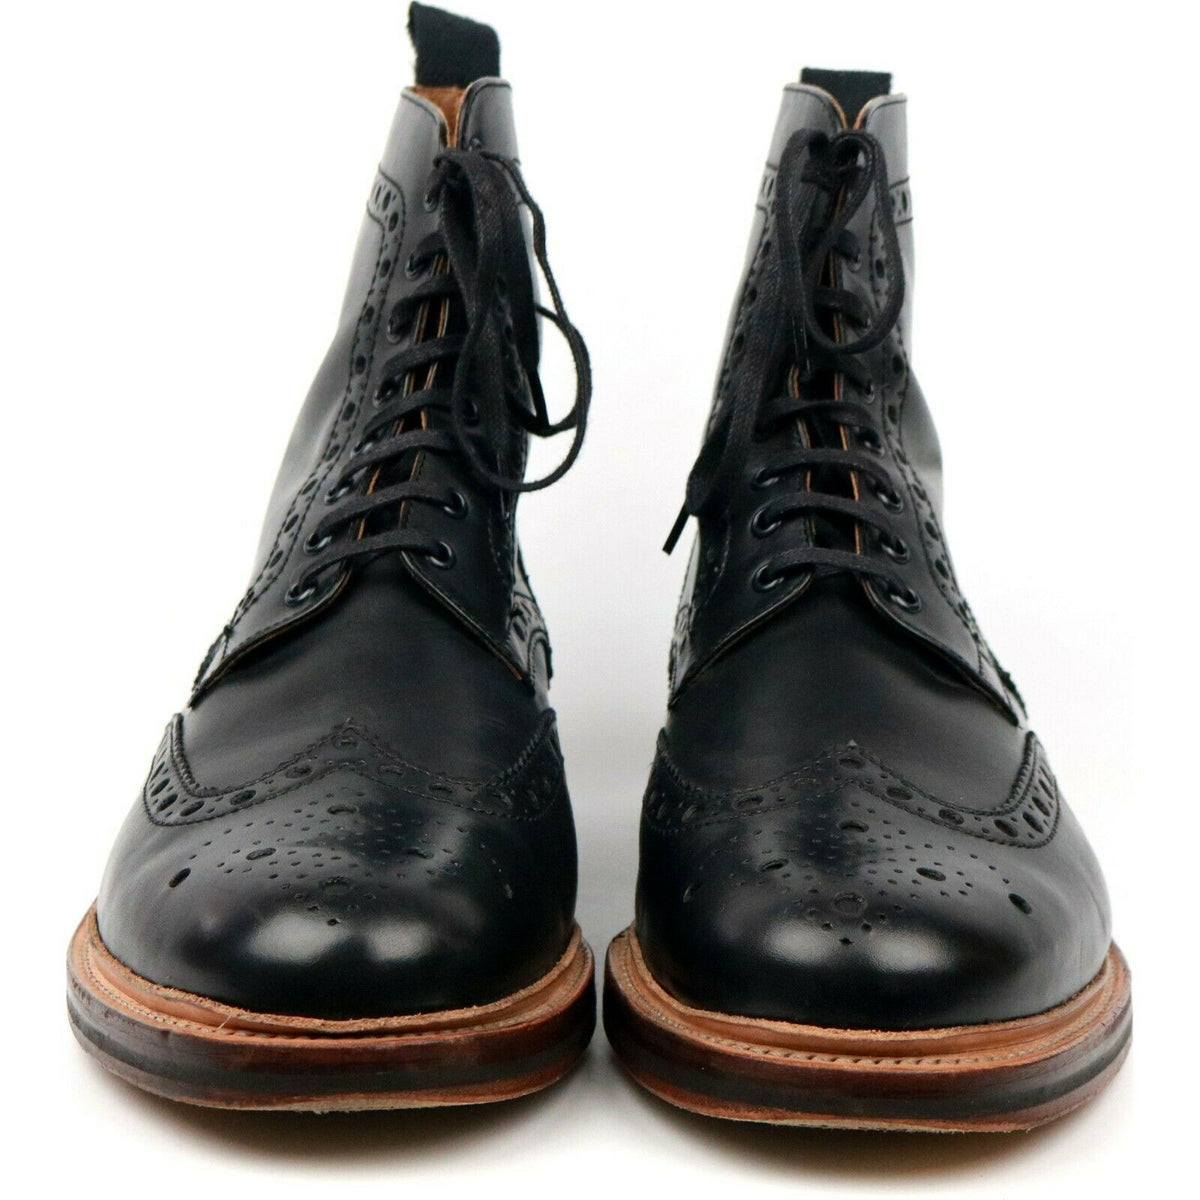 Grenson 'Fred' Black Leather Brogue Boots UK 11.5 G